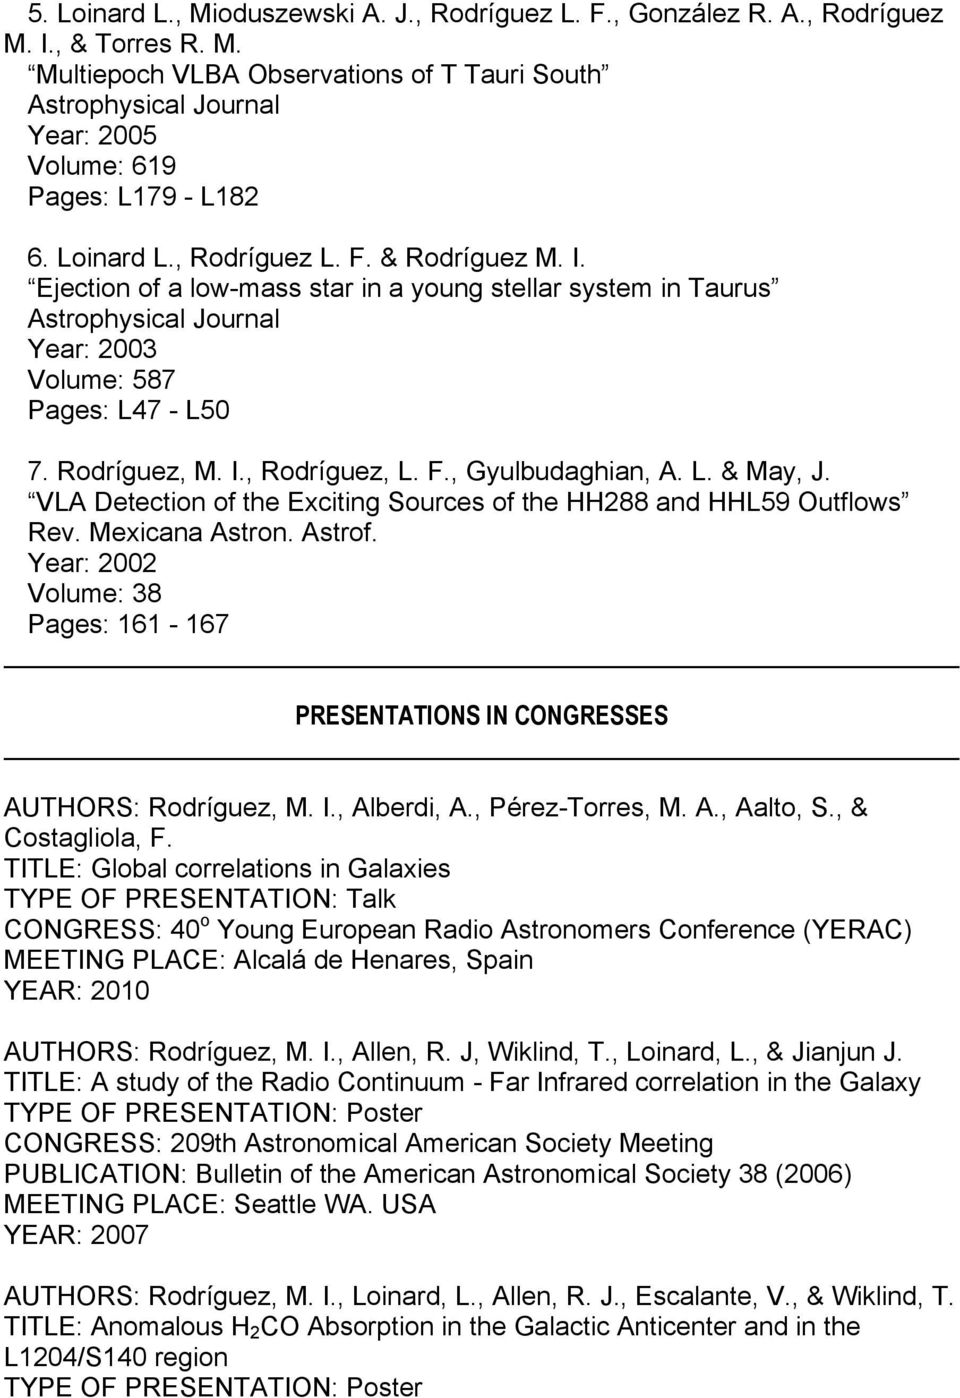 L. & May, J. VLA Detection of the Exciting Sources of the HH288 and HHL59 Outflows Rev. Mexicana Astron. Astrof. Year: 2002 Volume: 38 Pages: 161-167 PRESENTATIONS IN CONGRESSES AUTHORS: Rodríguez, M.